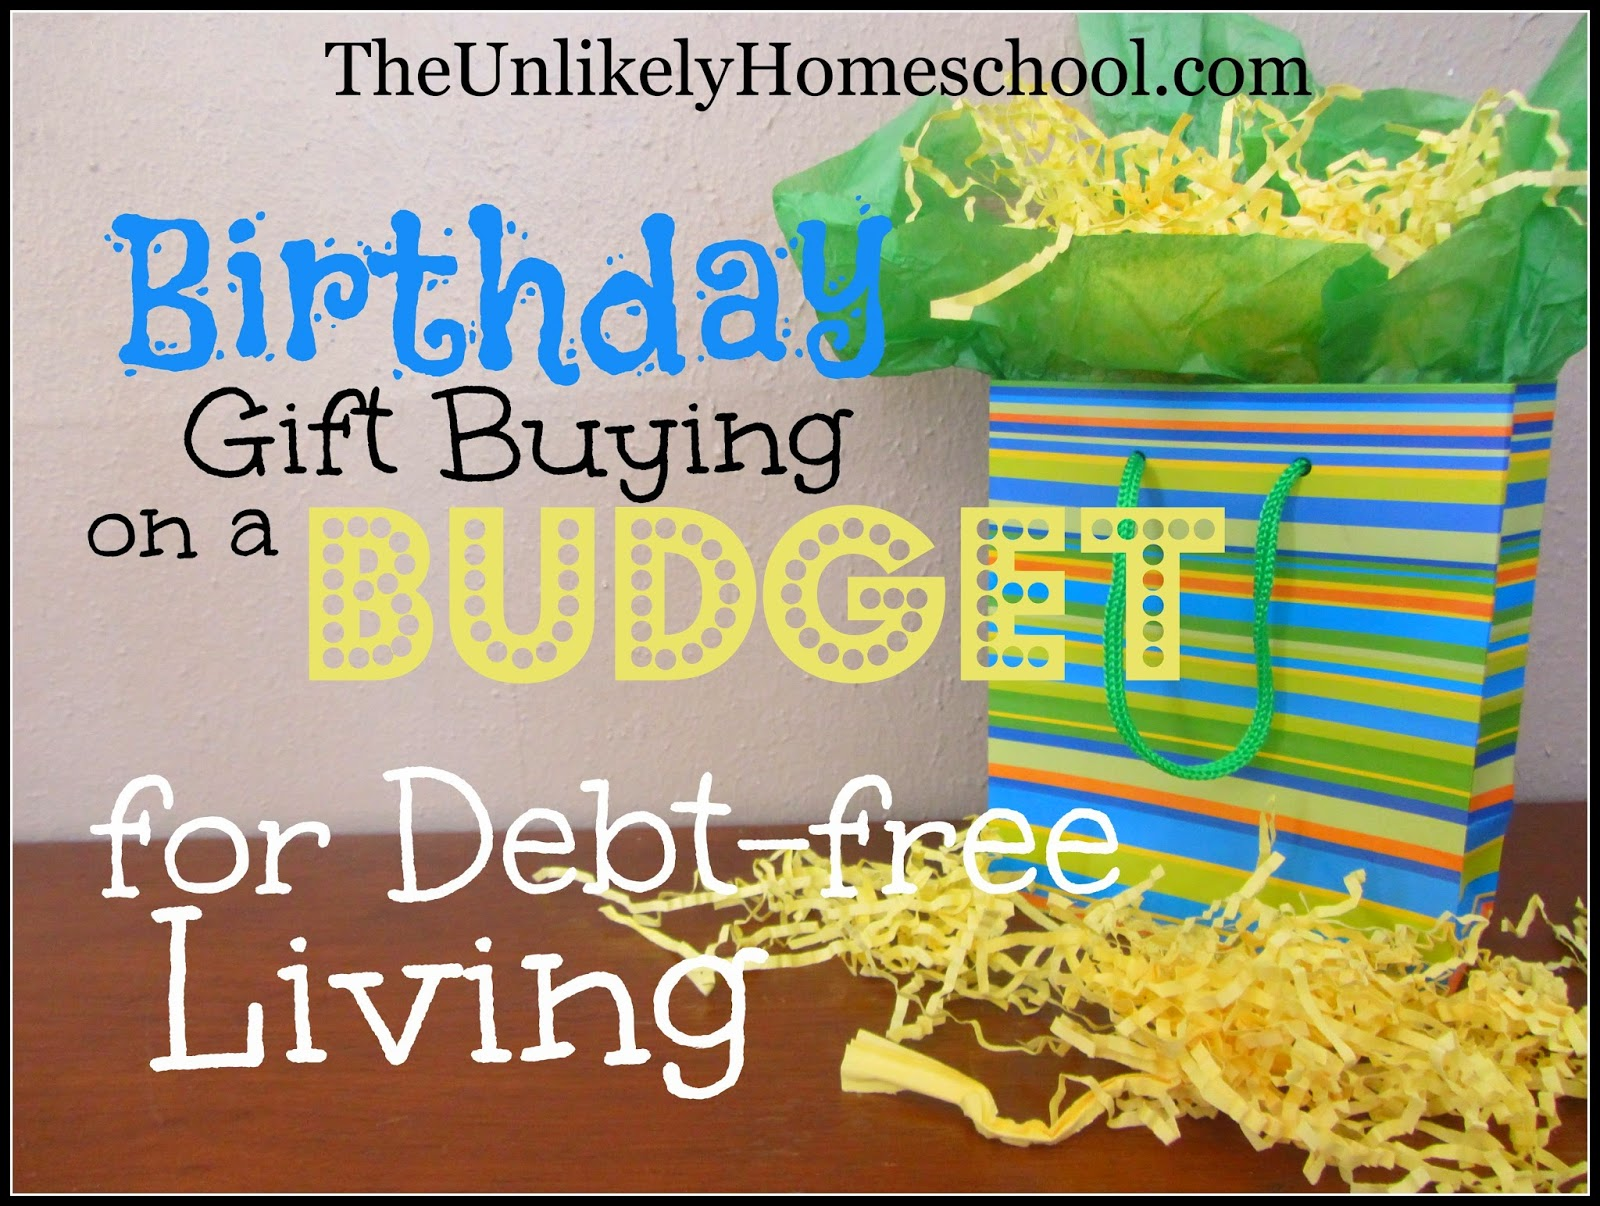 How a family of 7 budgets for birthday gift buying for debt-free living.  What to do when your kids get invited to multiple birthday parties each year.  [The Unlikely Homeschool}